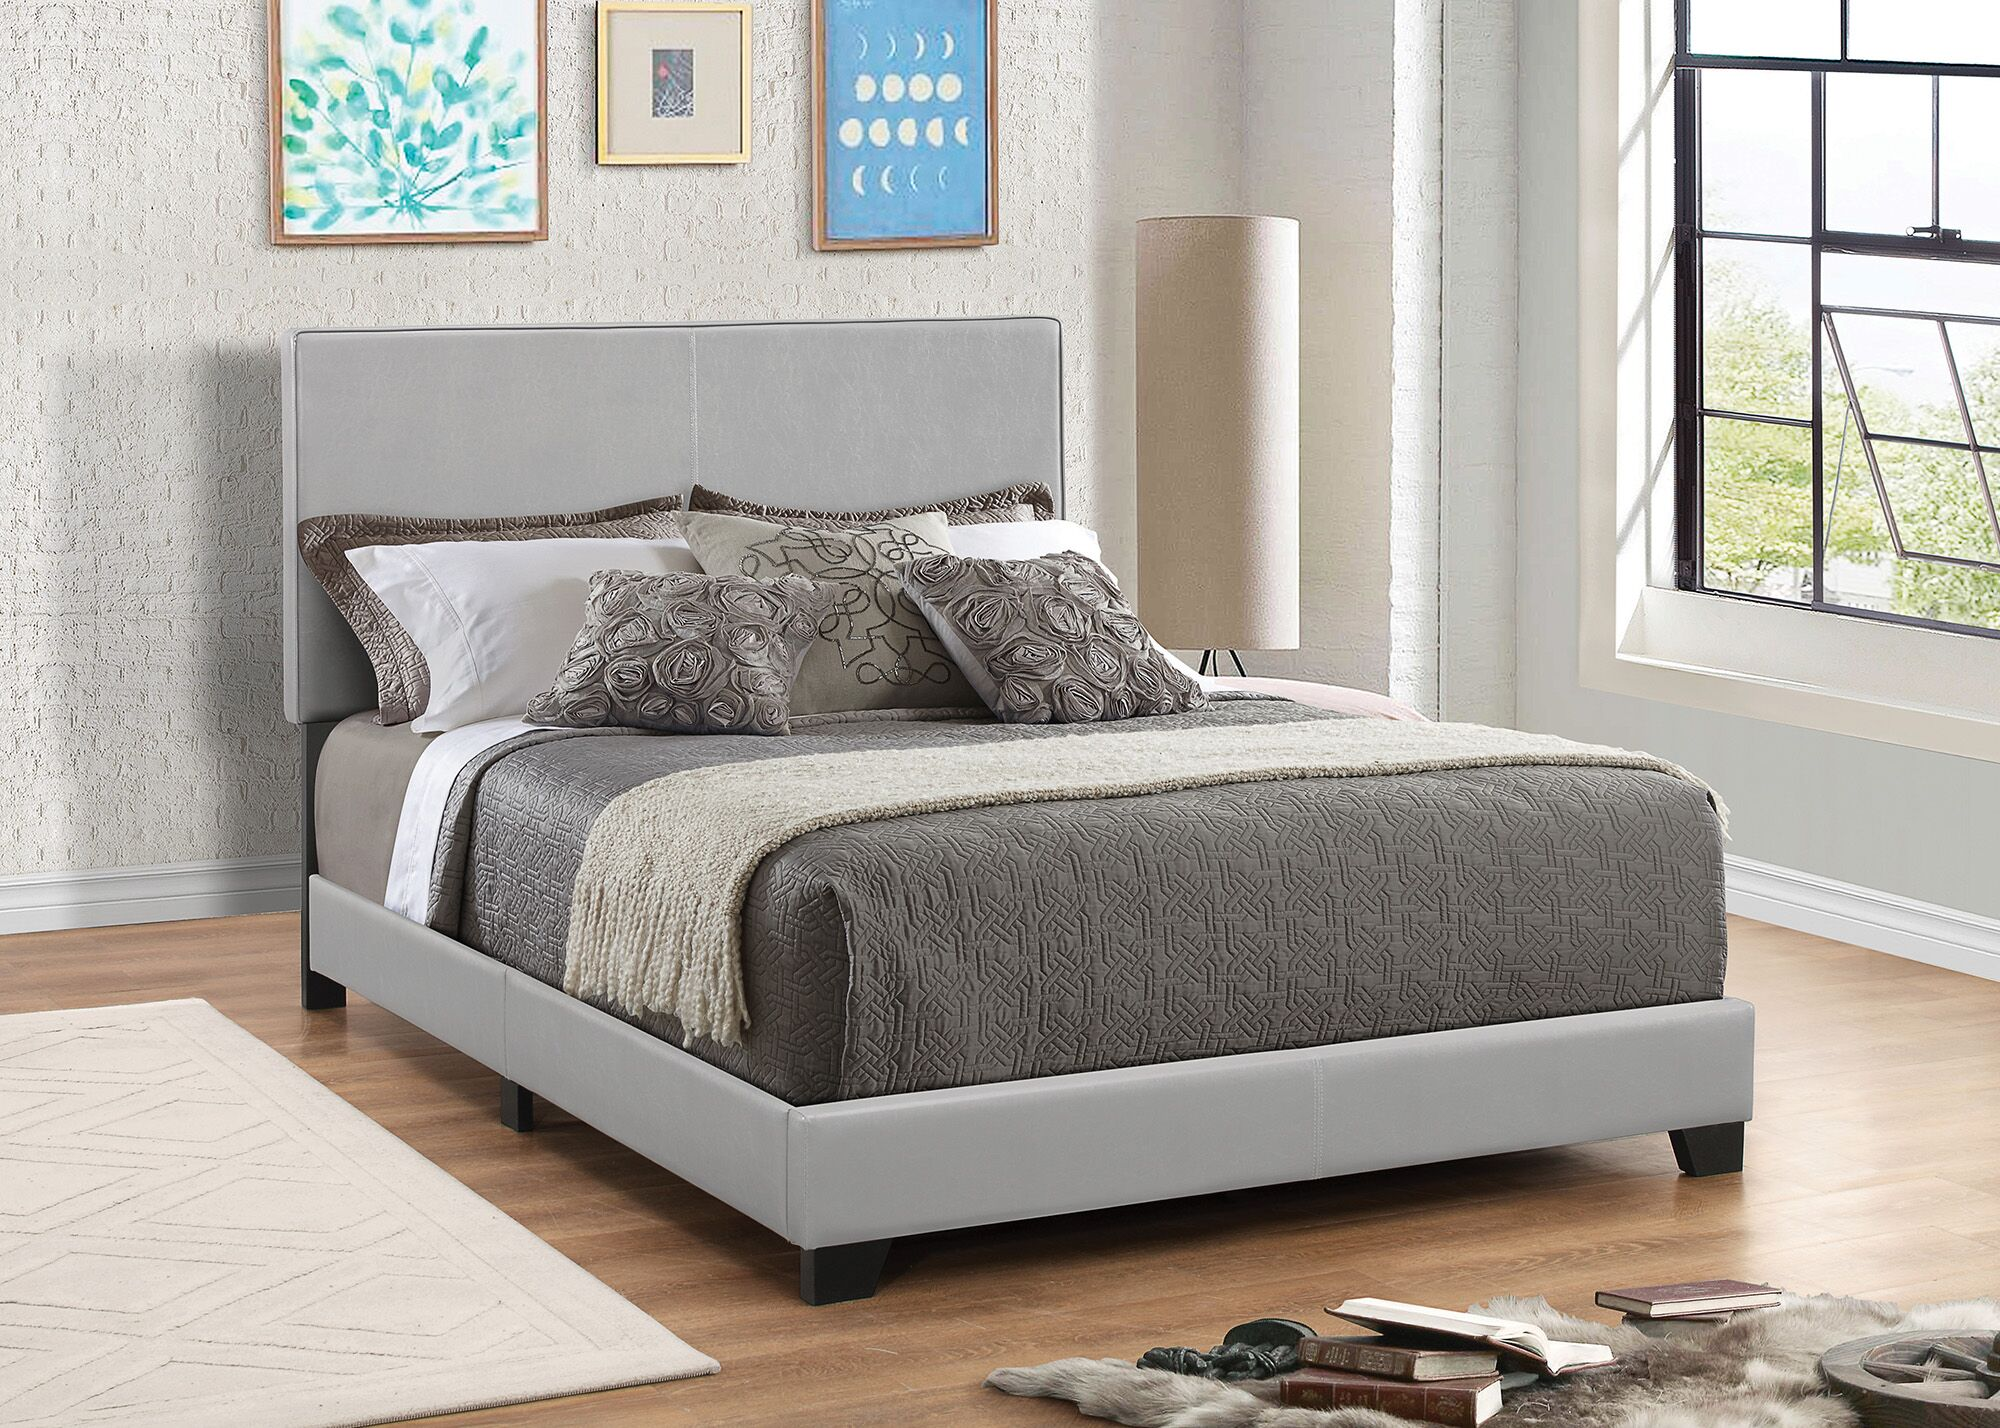 Fenagh Upholstered Panel Bed Size: Eastern King, Color: Gray